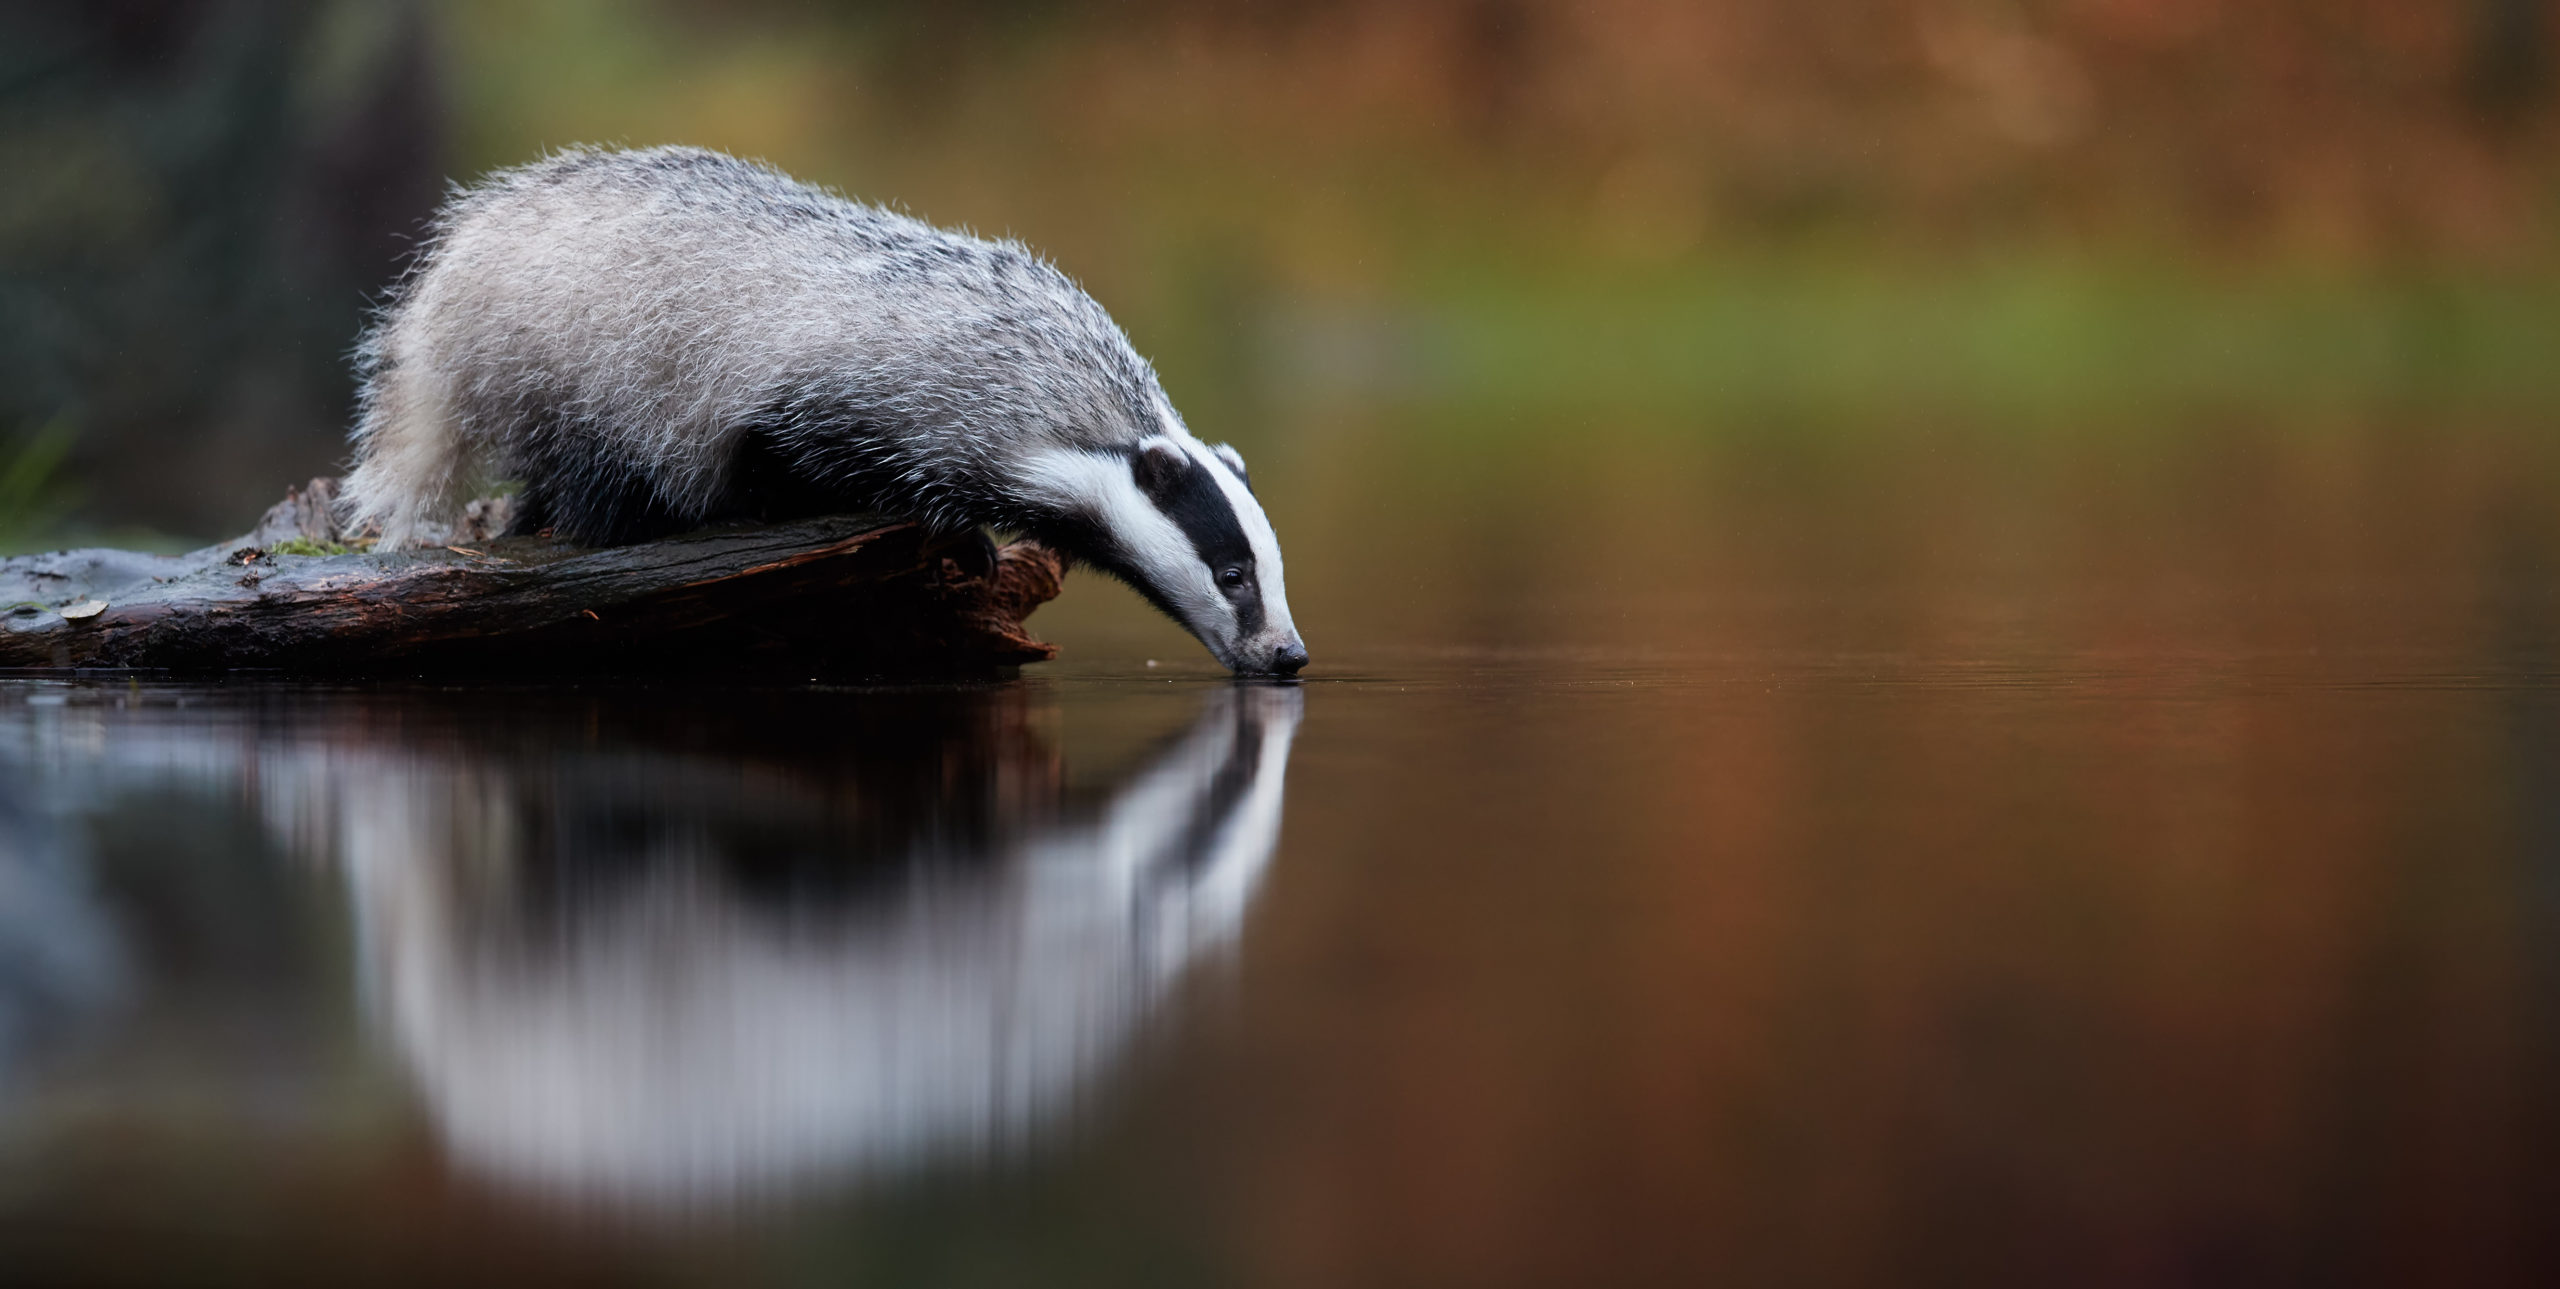 Badger drinking water - Bovine TB